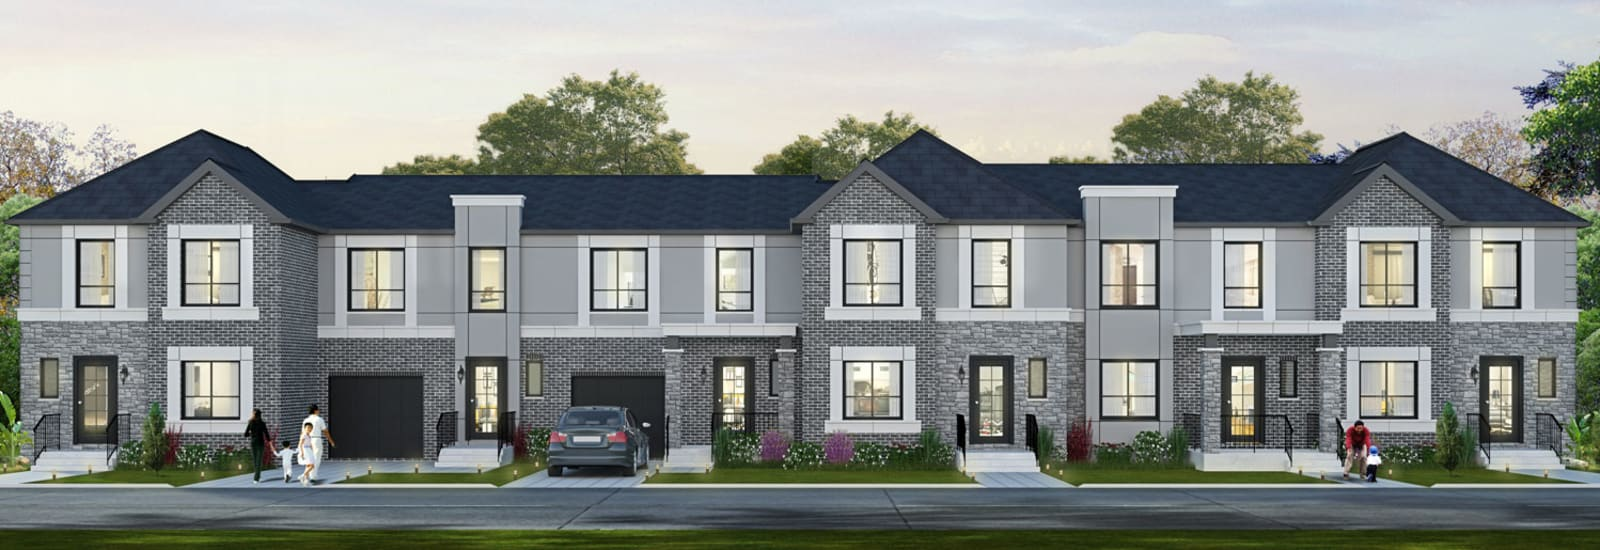 Broadway in Welland, Projects by Cairnwood Homes, Home Building in Niagara